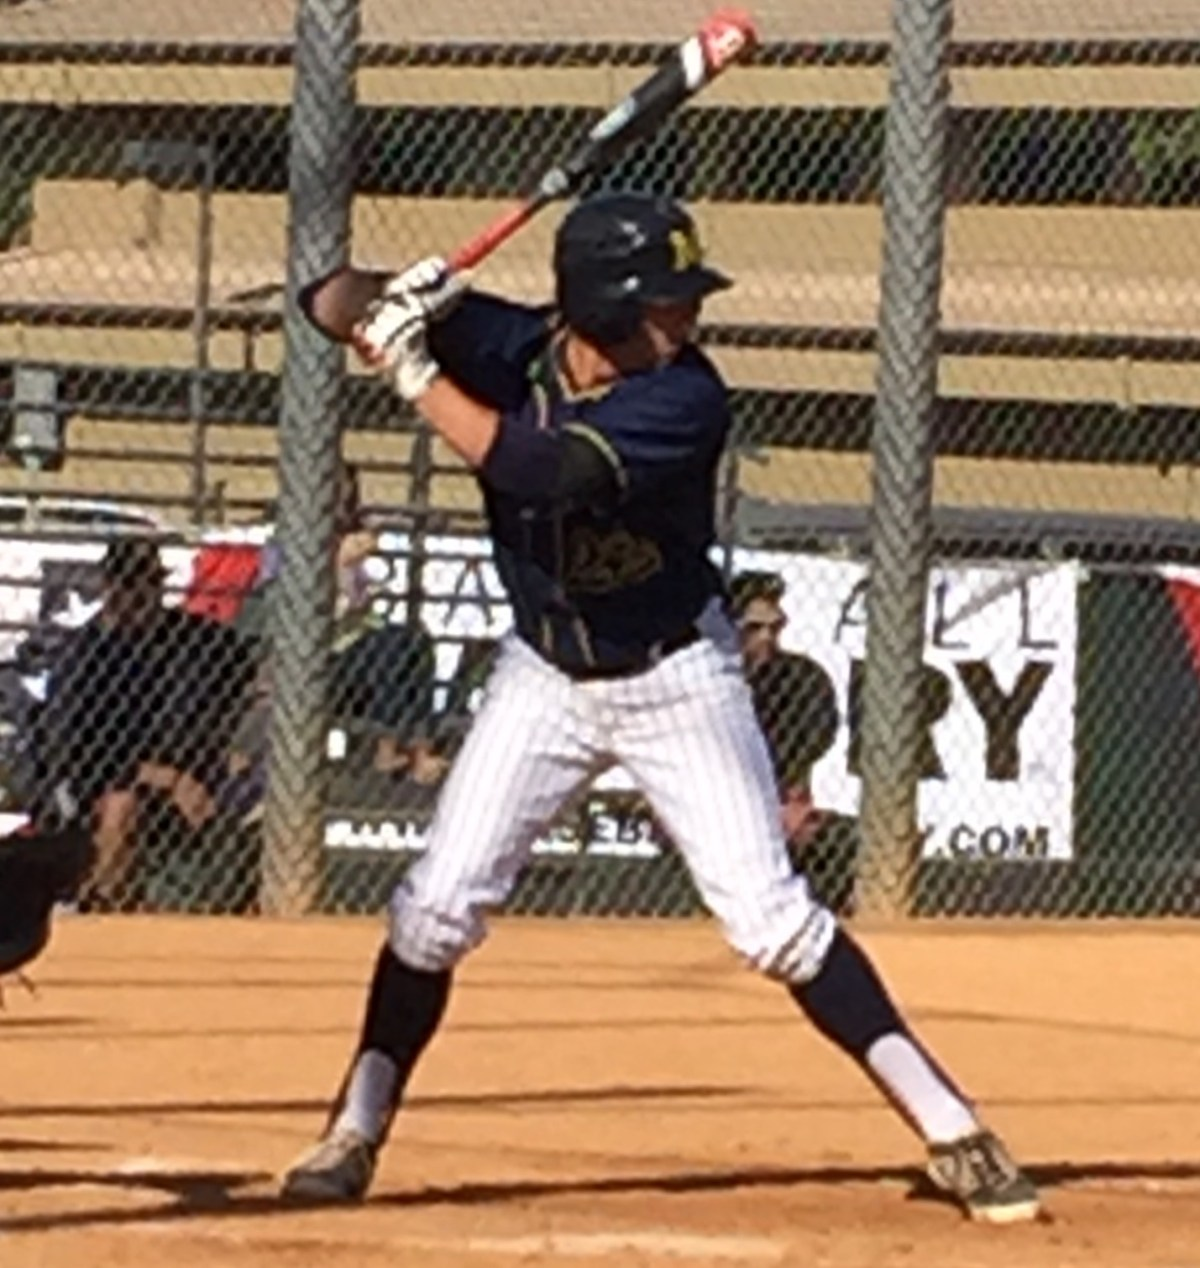 2016 SS Spencer Steer (Long Beach Millikan HS)